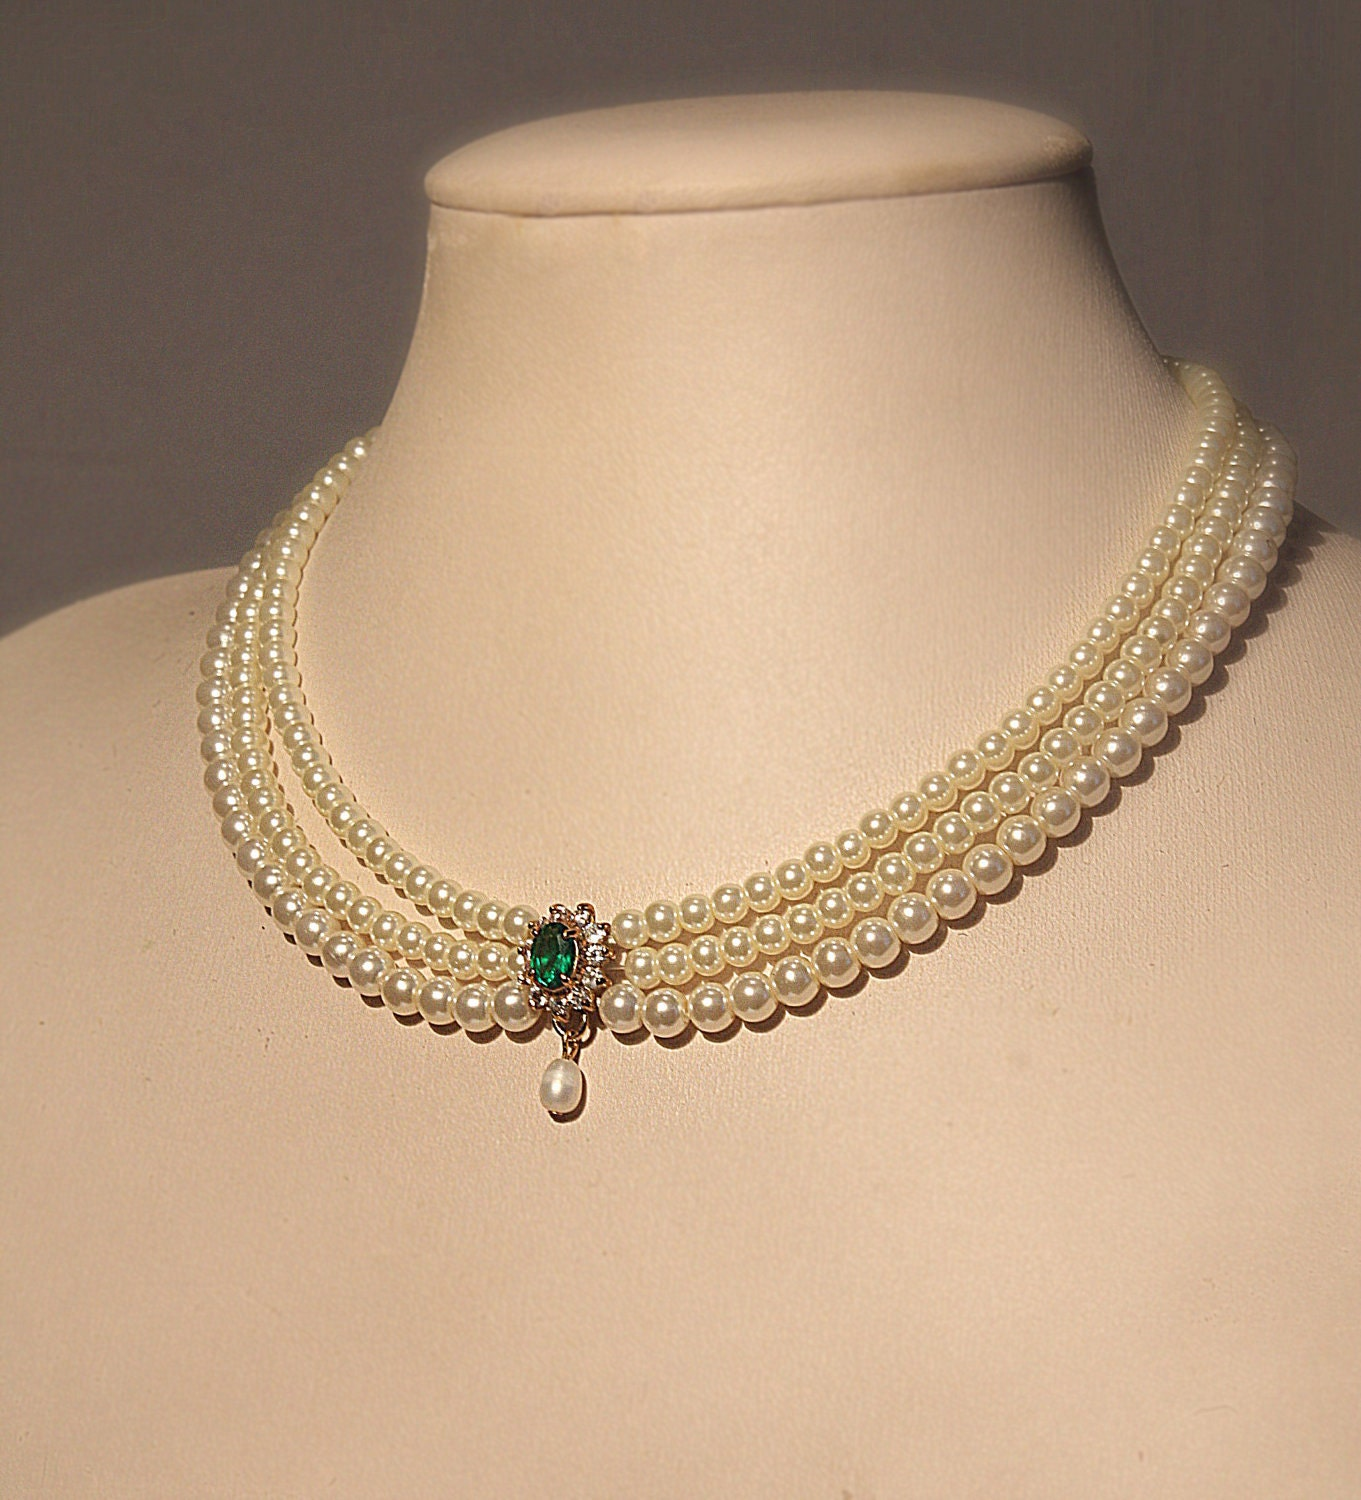 Vintage Pearl Choker Necklace: Bridal Necklace Emerald Green Stone Vintage Bridal Pearls